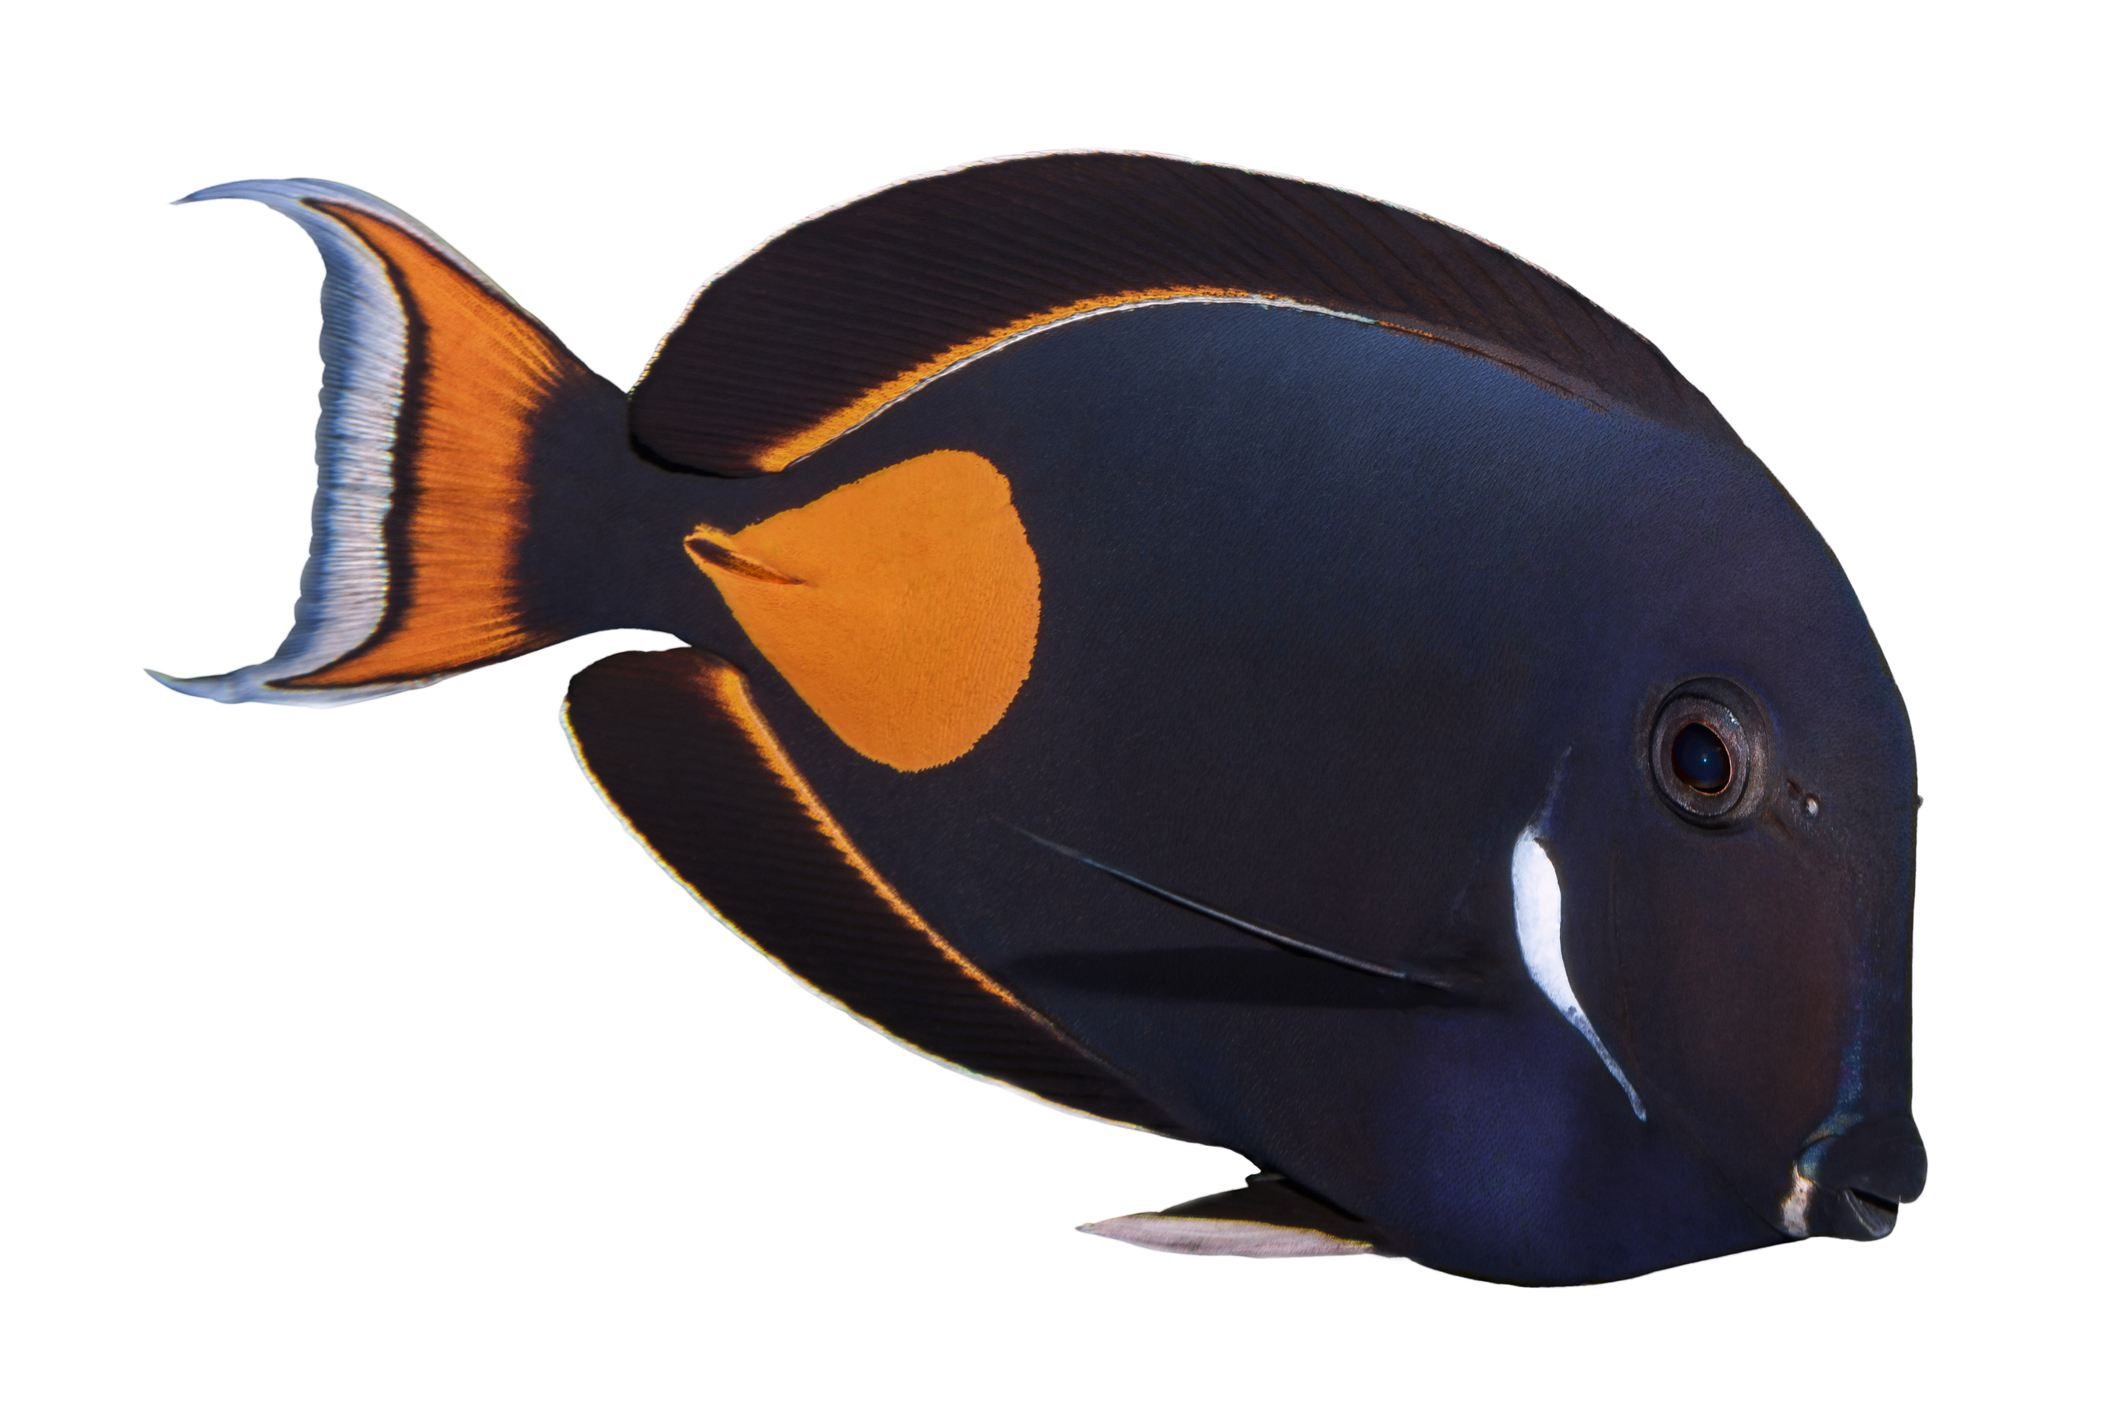 An Achilles tang fish in the ocean